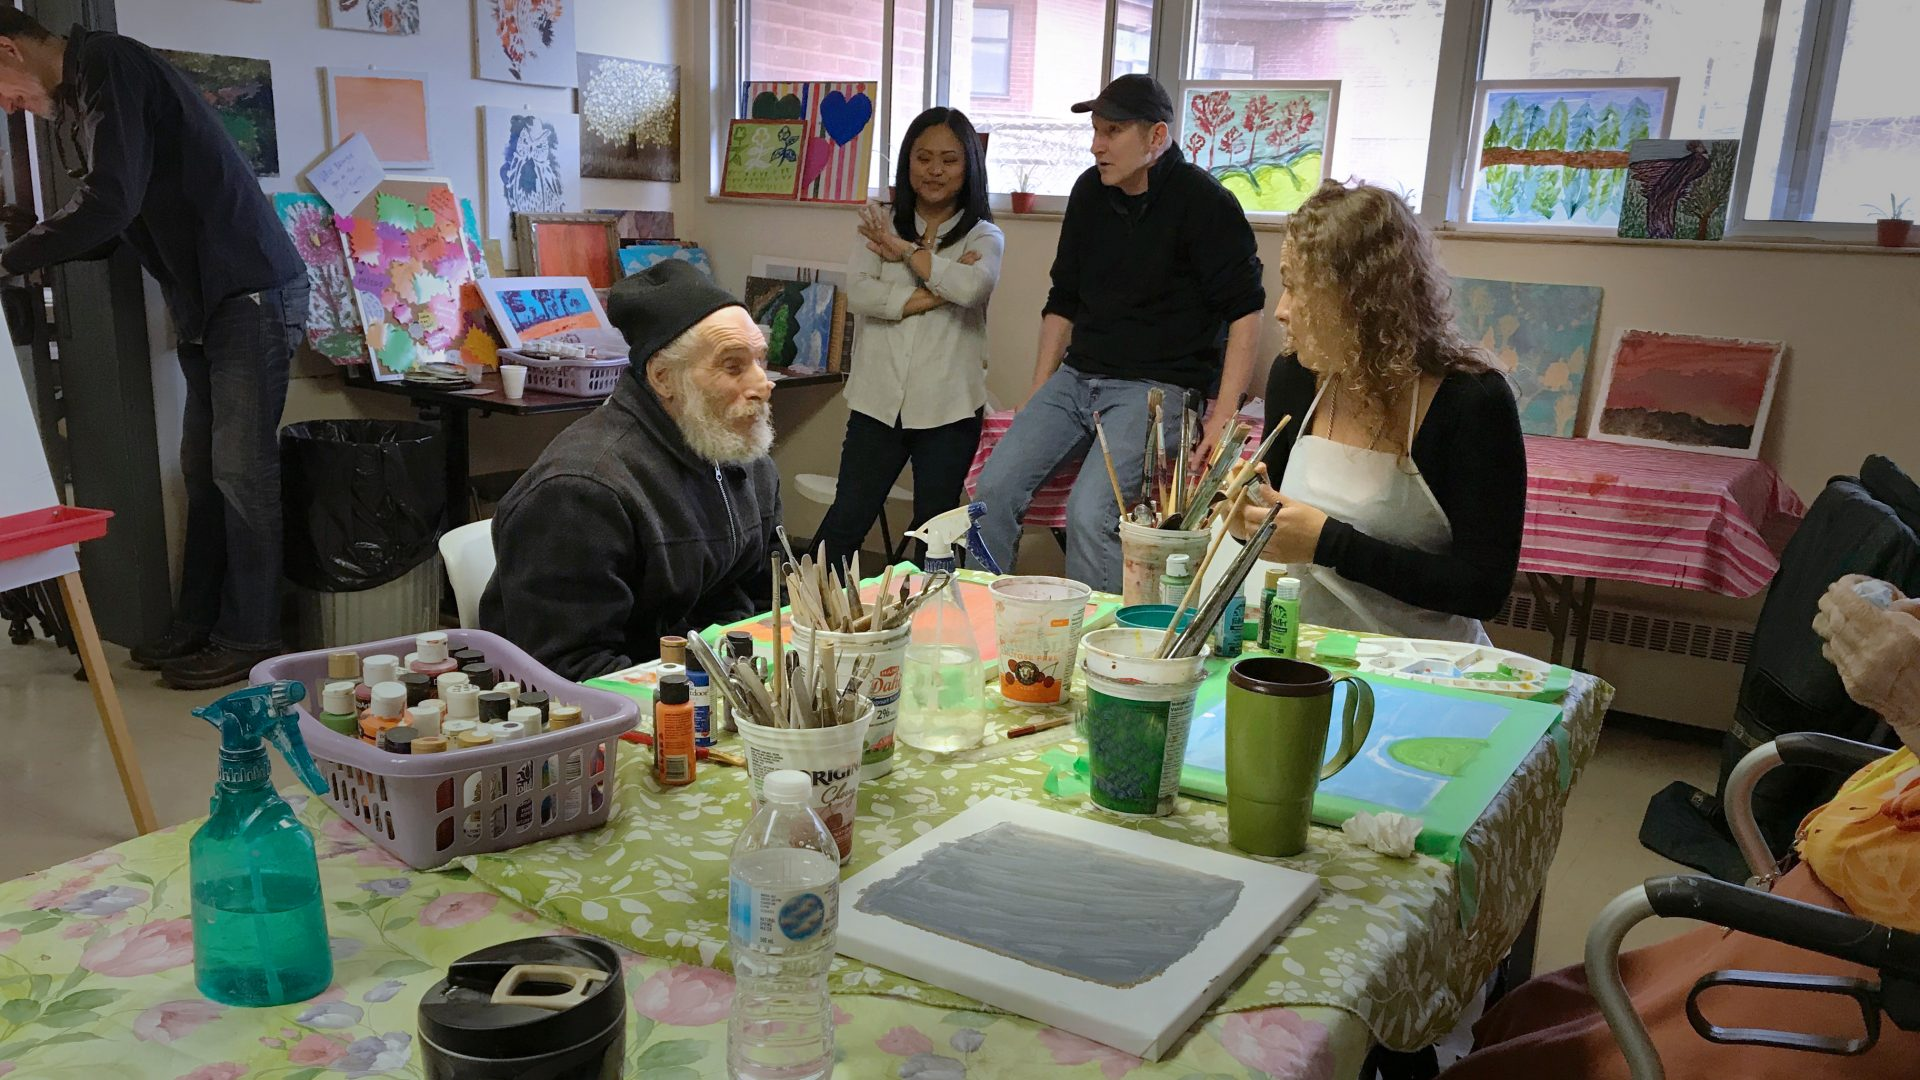 CBC OUR TORONTO Marivel visitng 220 Oak Street art studio to film segment